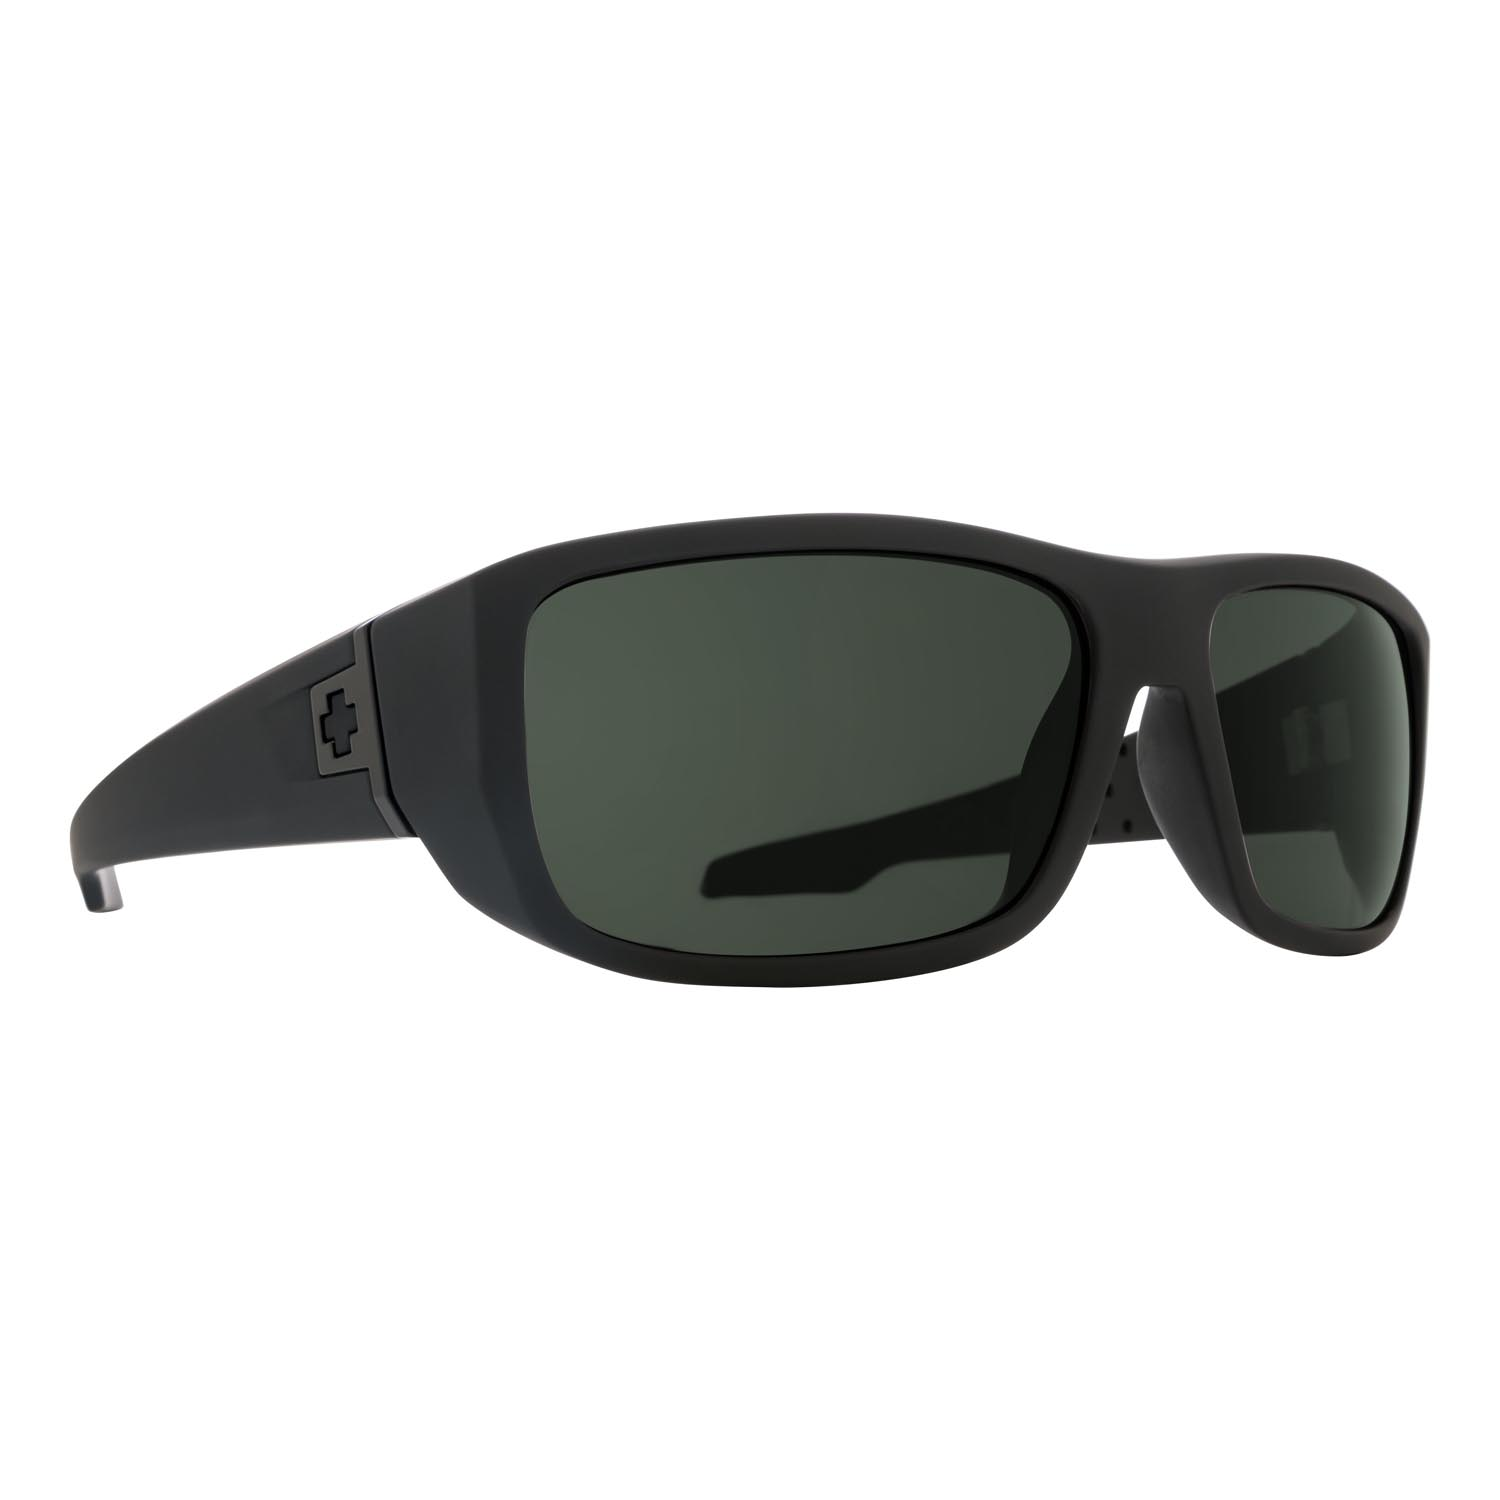 Spy Sunglasses mc3 in soft matte black with gray green polarized lenses